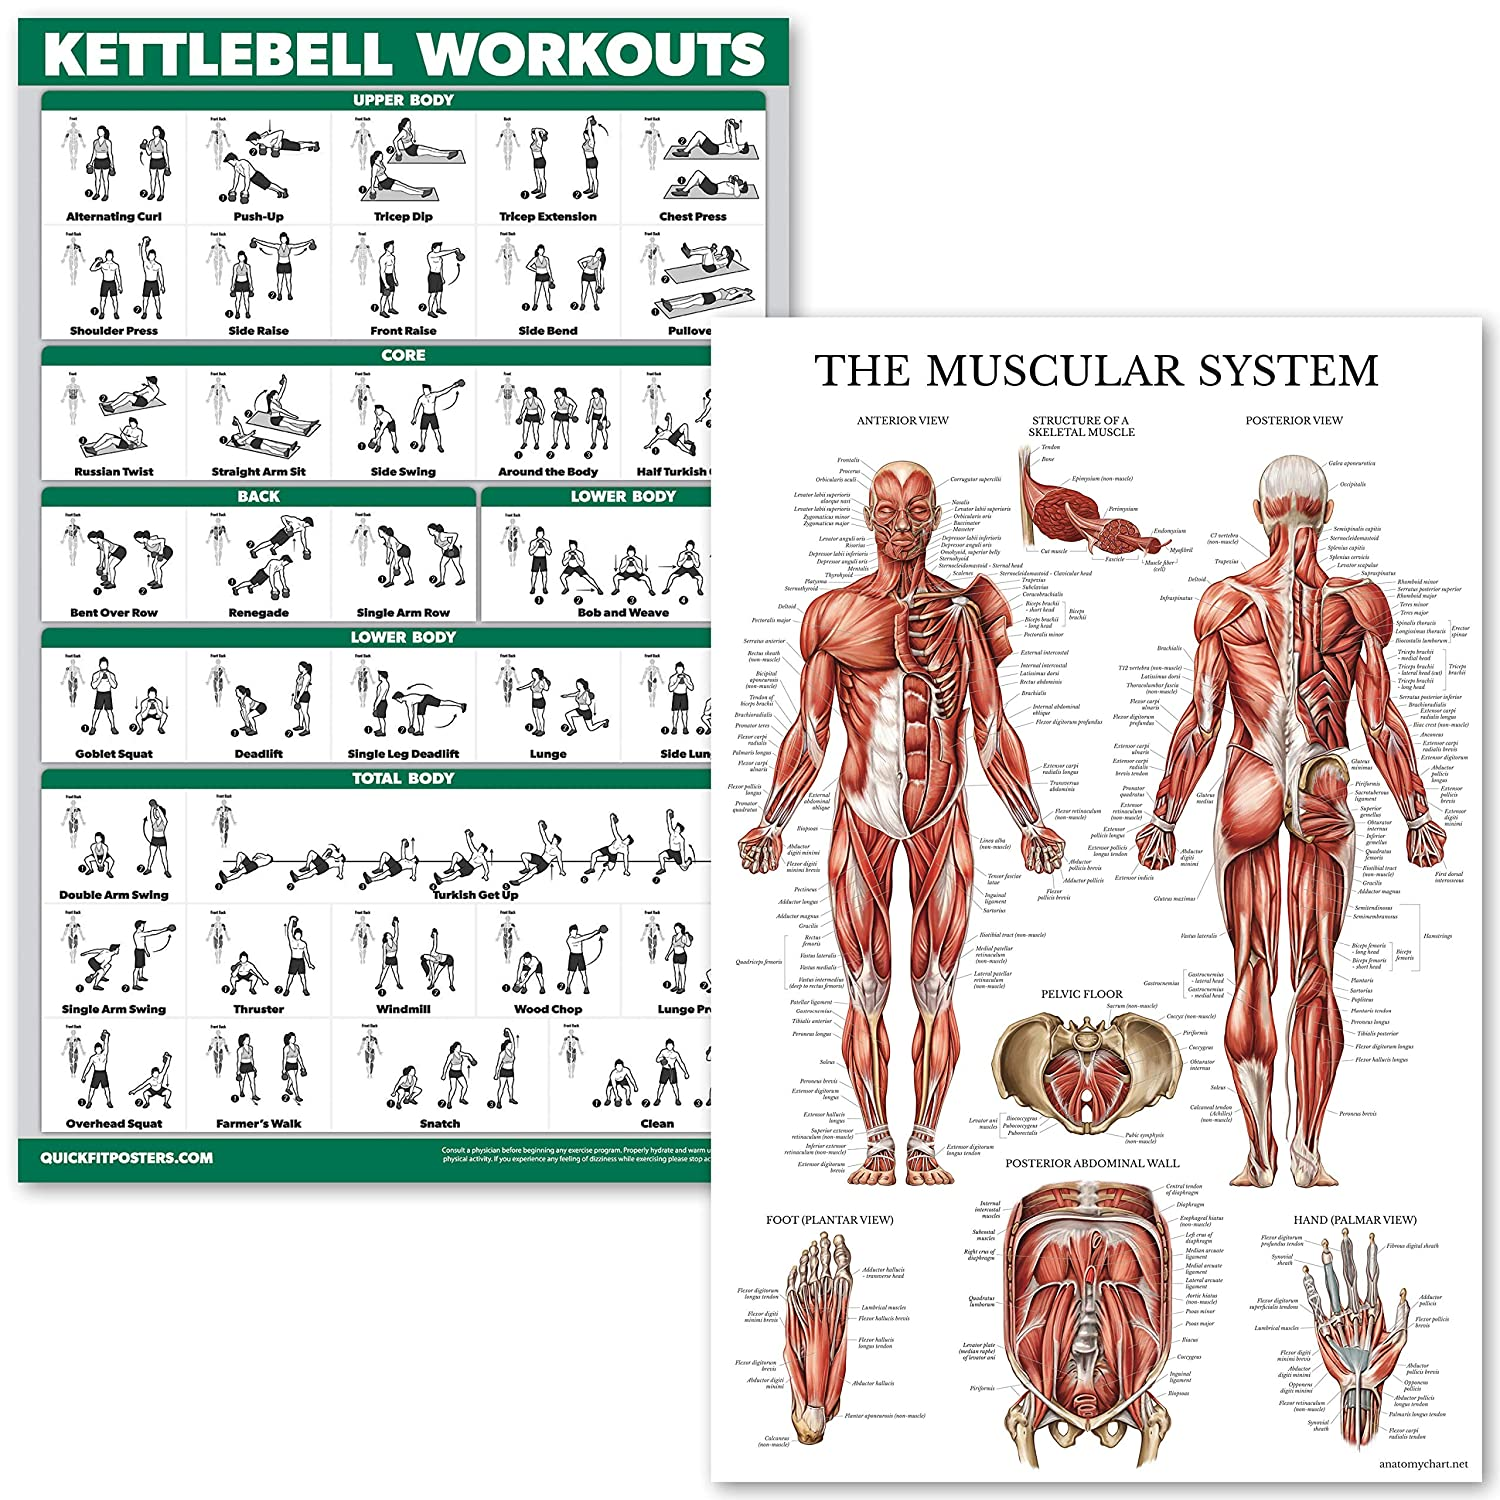 Amazon Quickfit Kettlebell Workouts And Muscular System